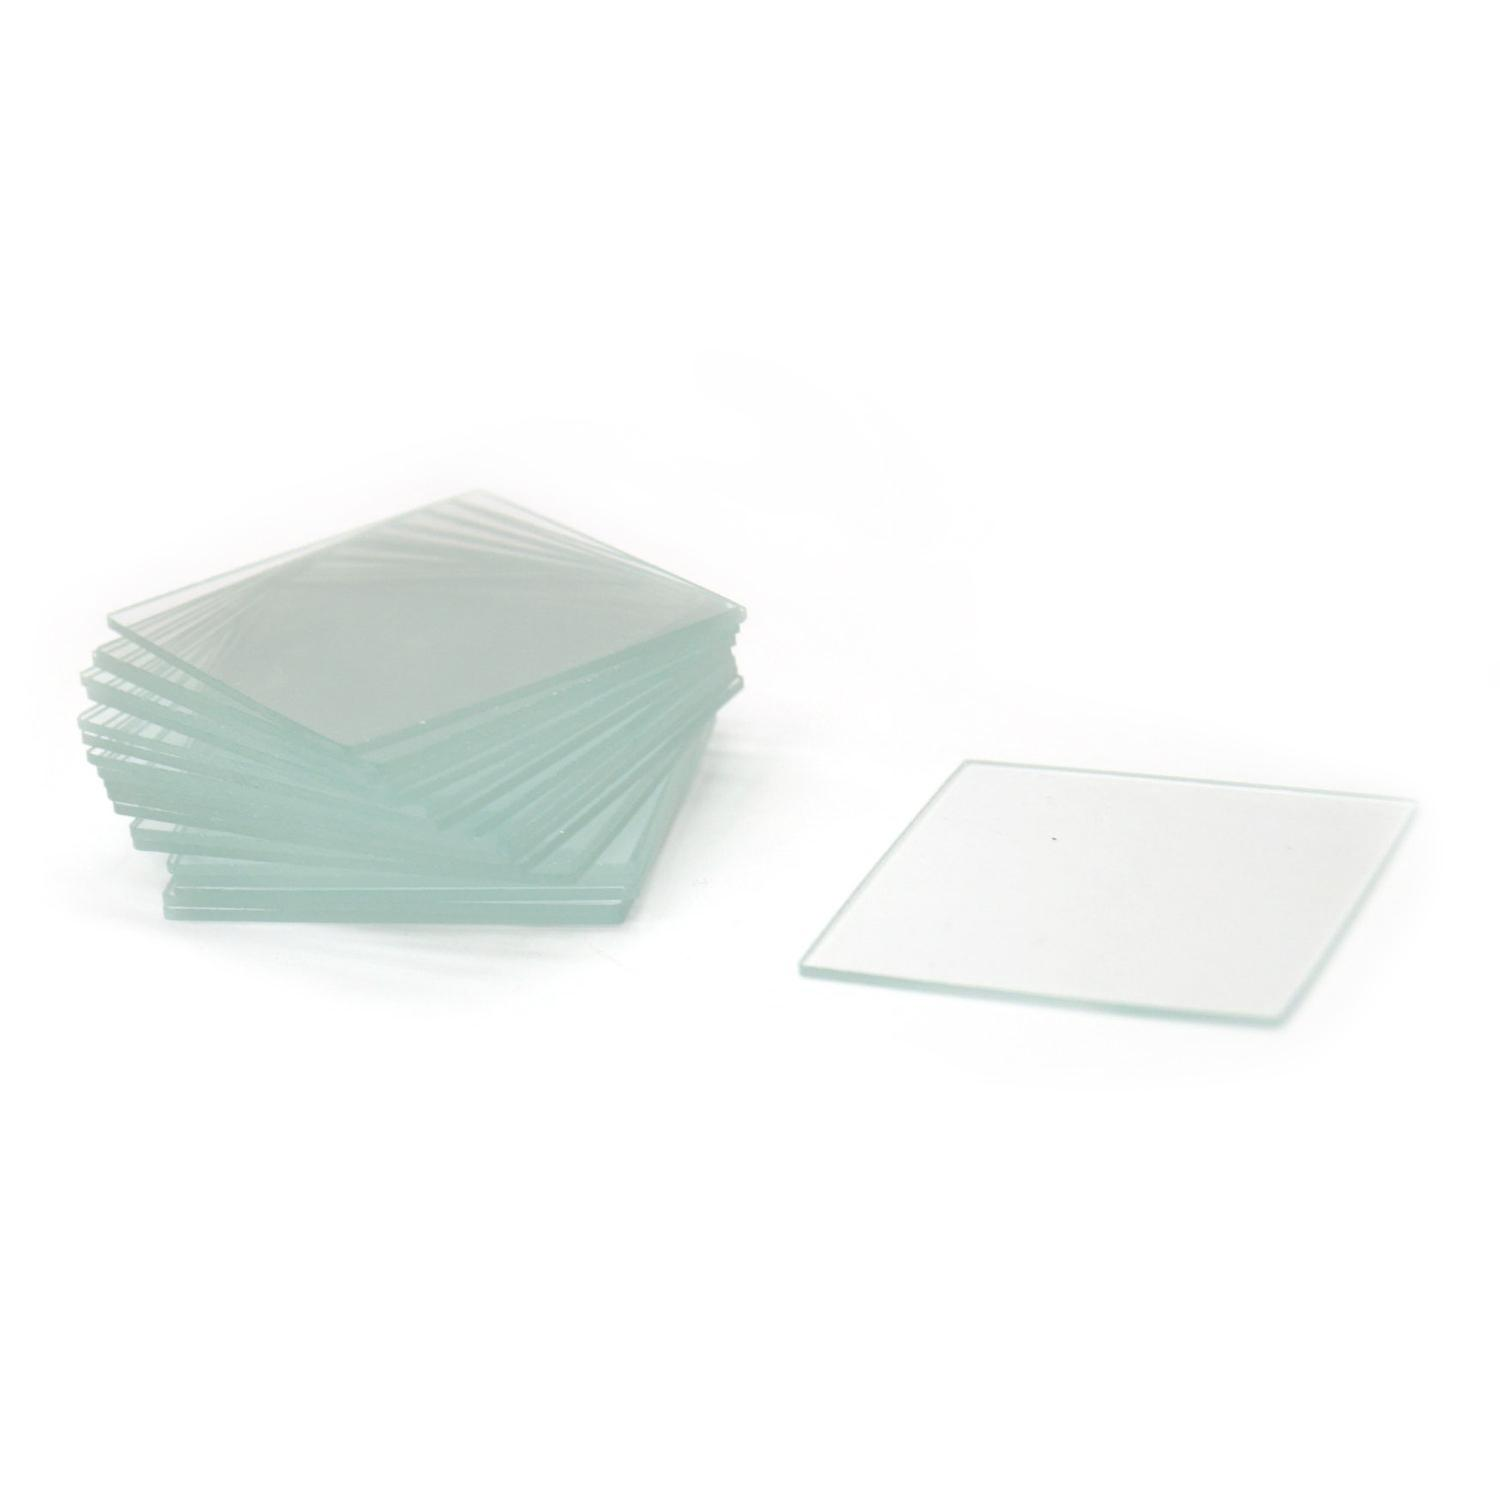 1-1/2 Square Micro Thin Glass - 20 Pack